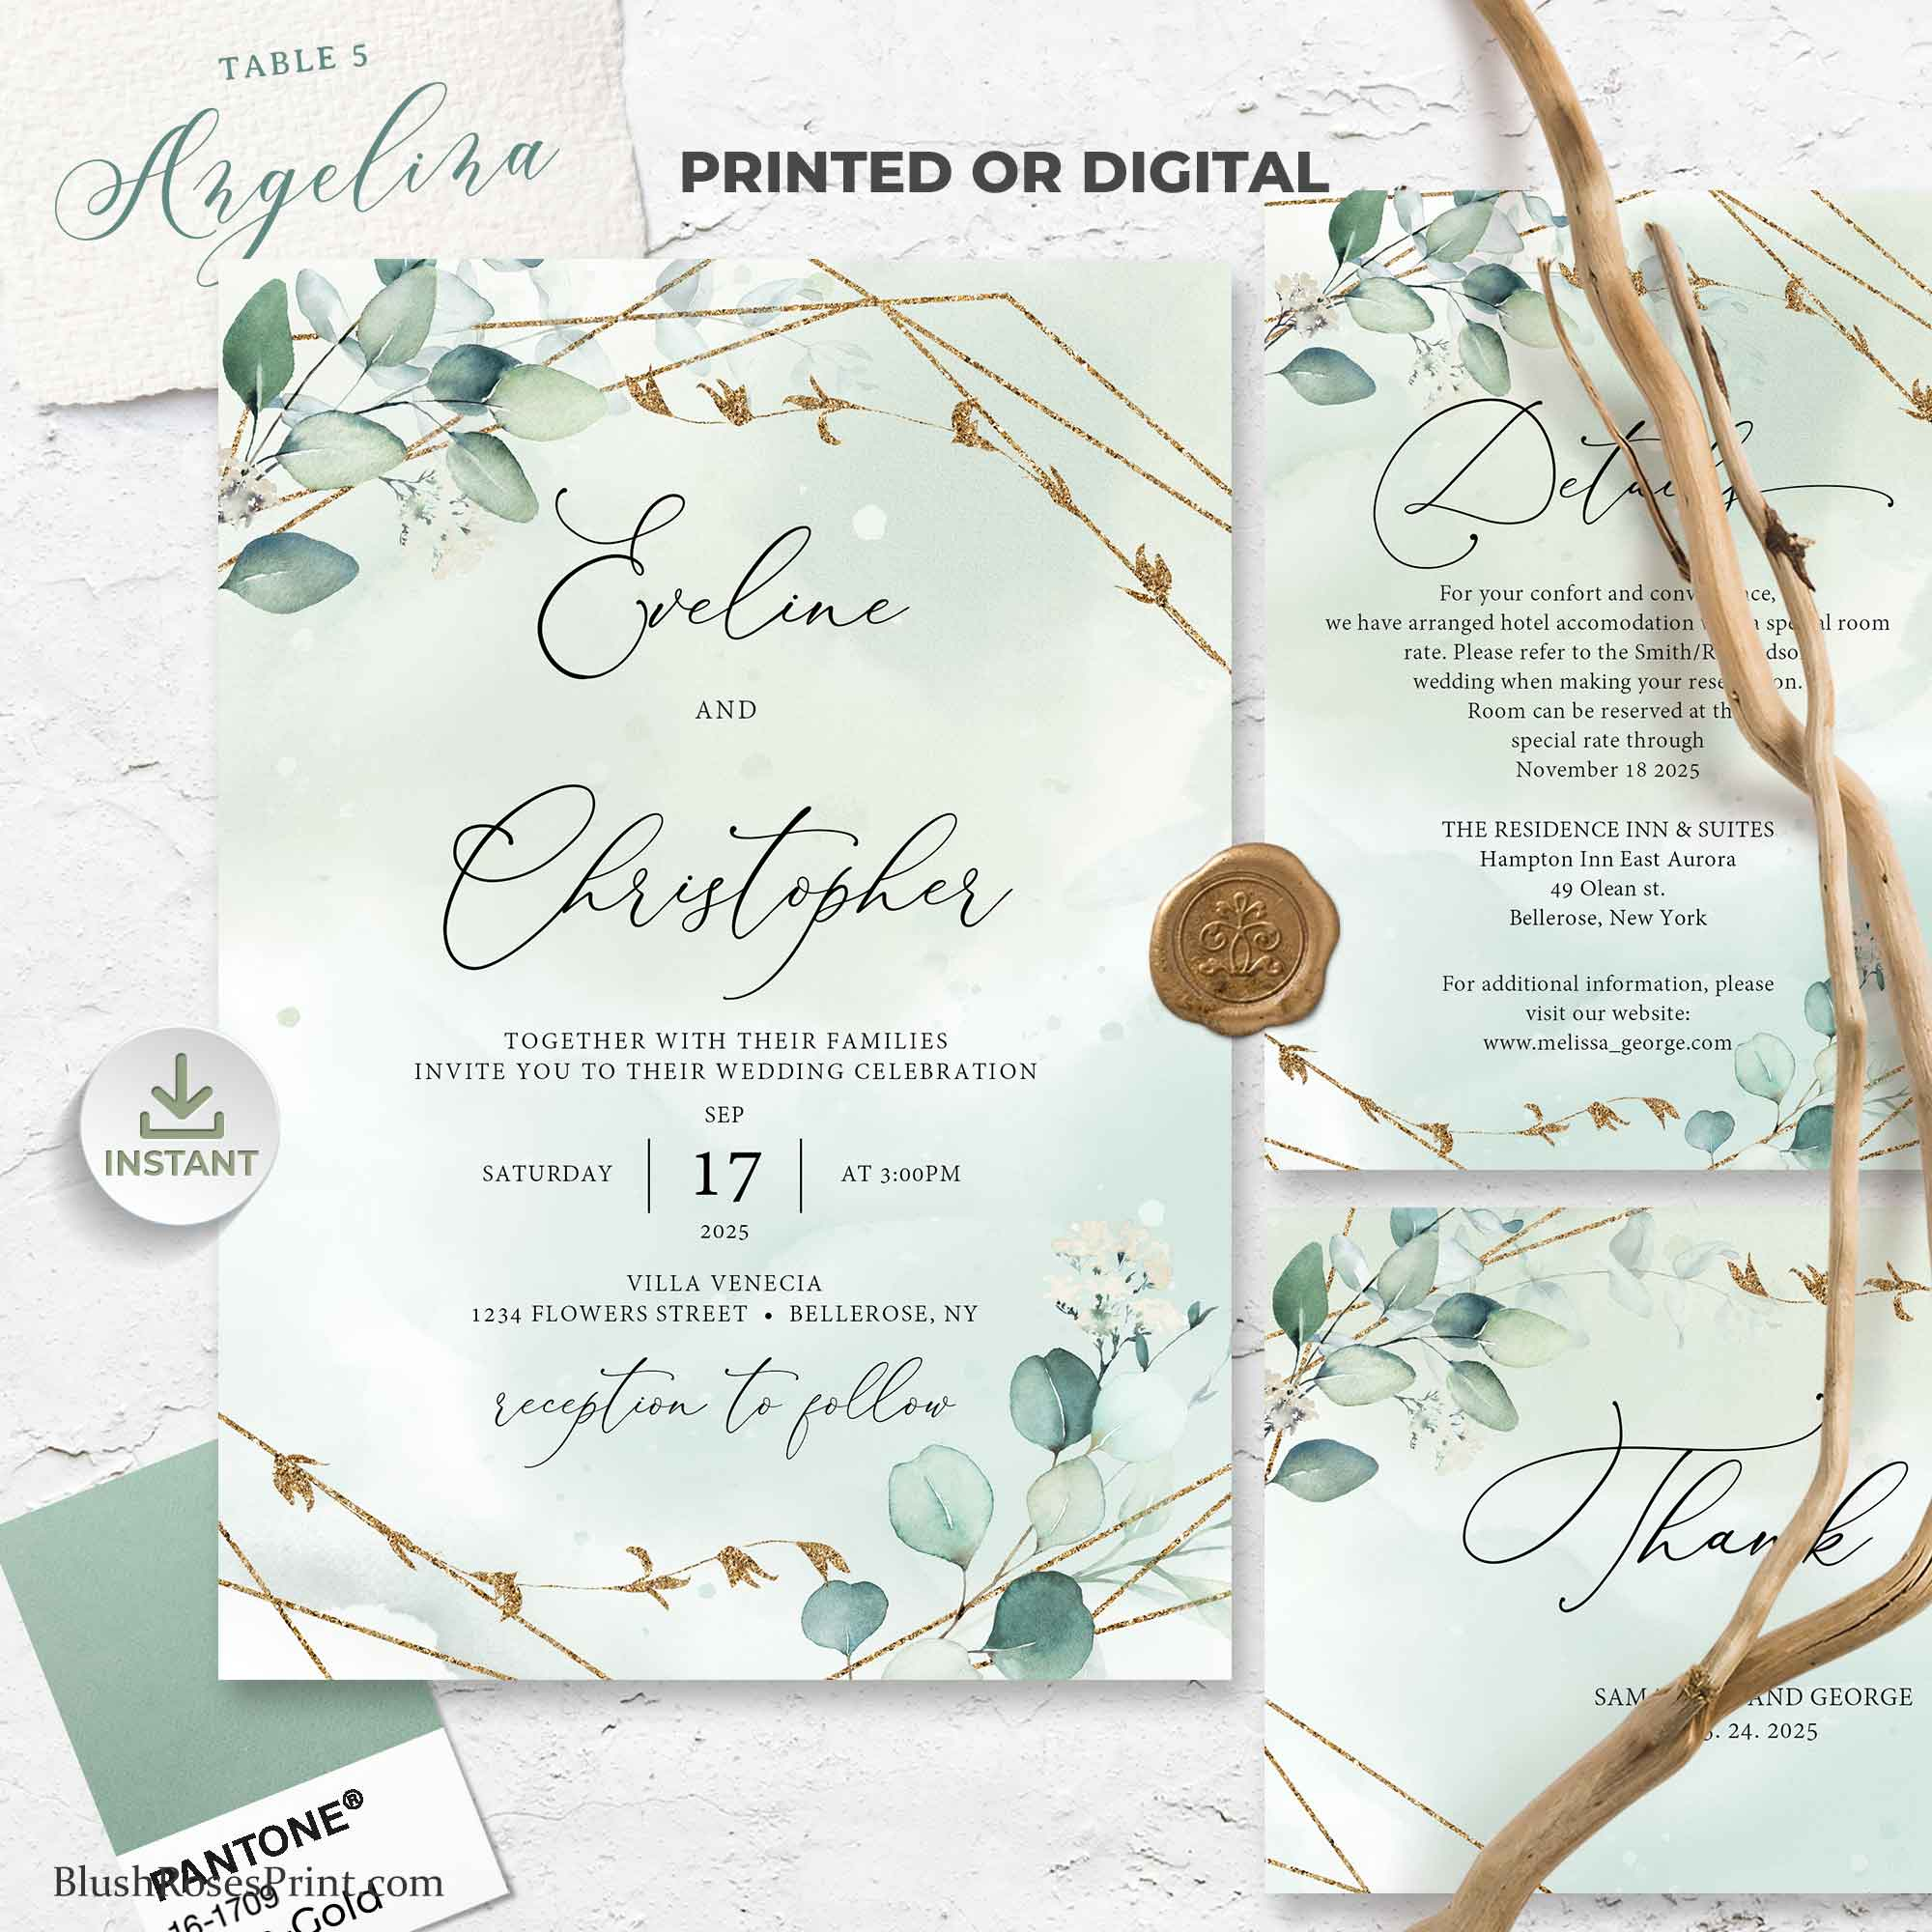 NANET - Boho Greenery Bridal Shower Invitation, PRINTING or DIGITAL Template for Bridal Shower, Green and Faux Gold Geometric Invite Diy